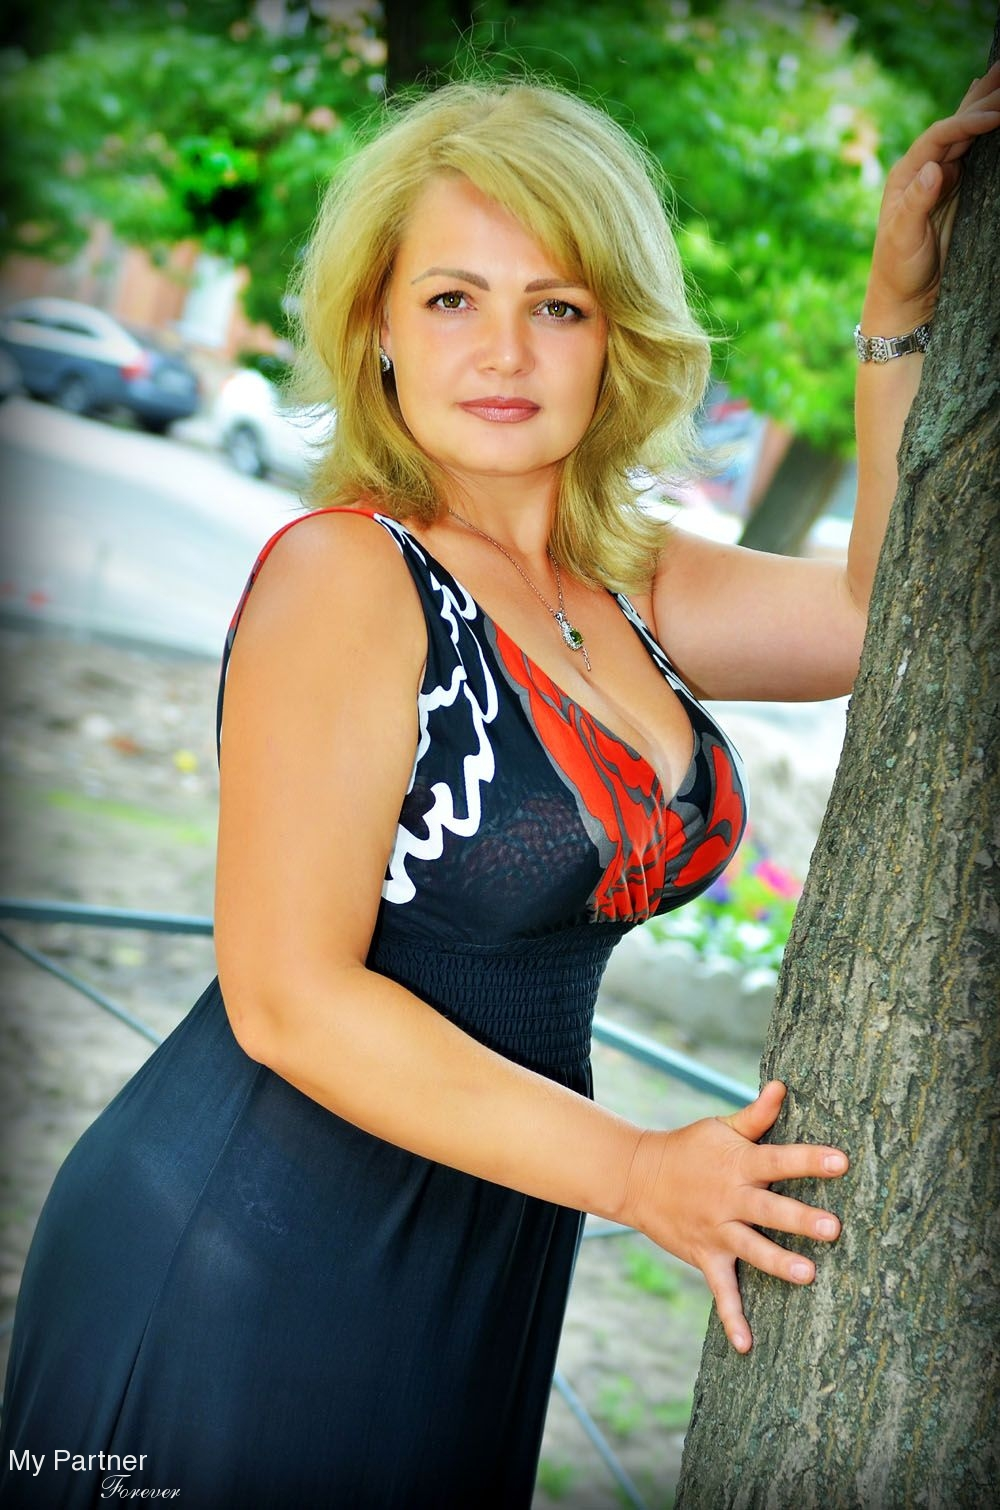 tampa divorced singles personals Tampa fl's best 100% free divorced singles dating site meet thousands of divorced singles in tampa fl with mingle2's free divorced singles personal ads.